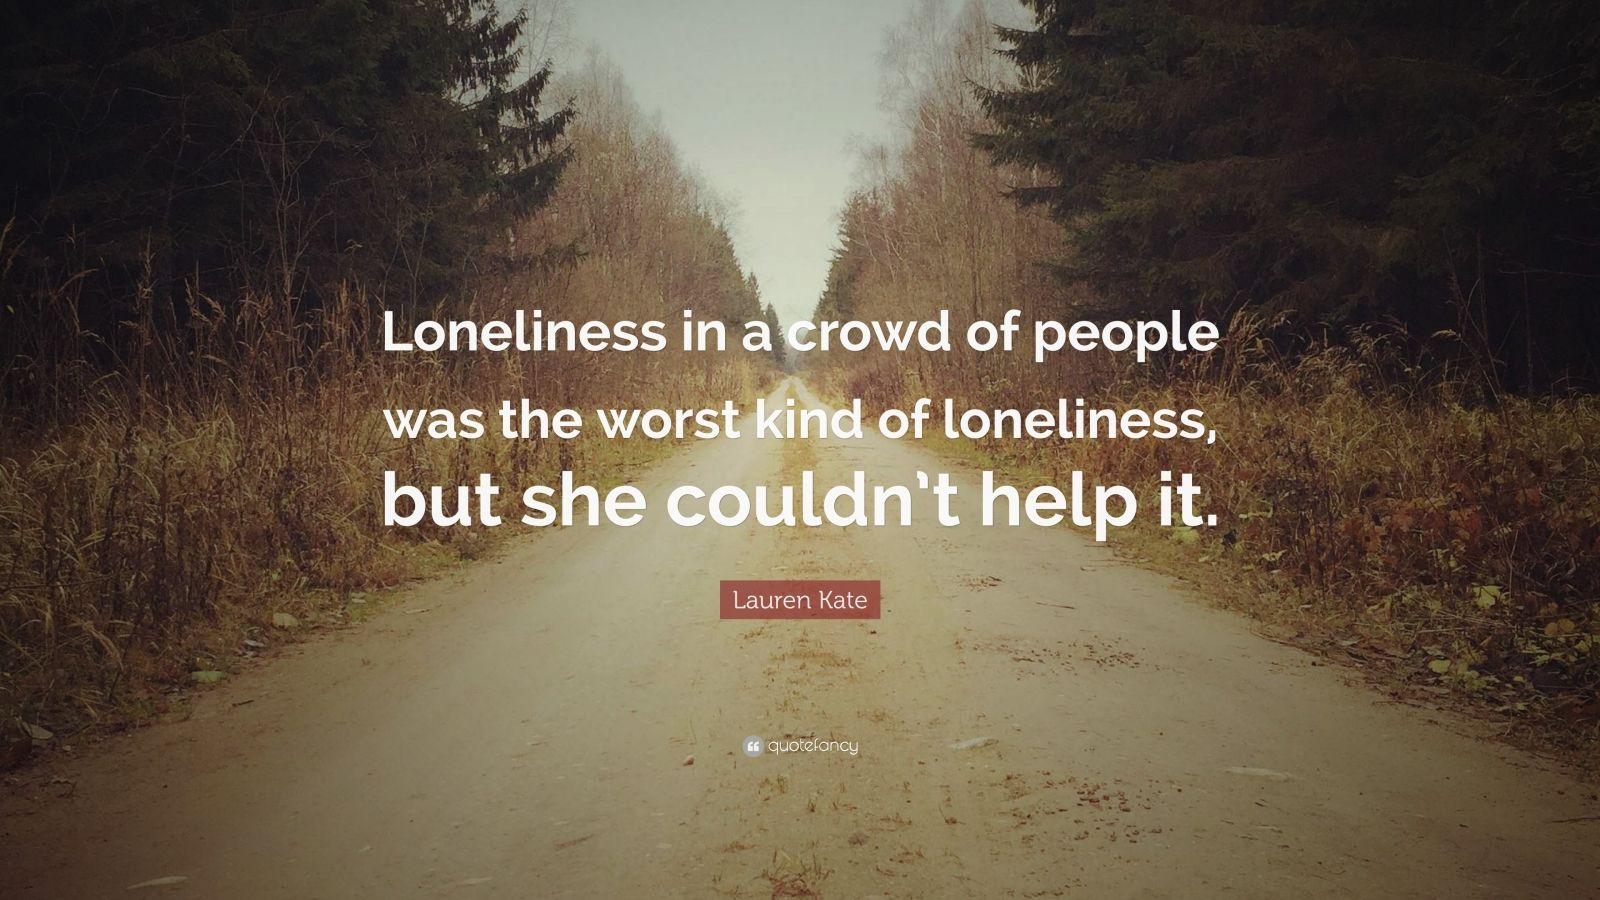 loneliness in a crowd essay Human and loneliness essay loneliness in society a crowd can be the loneliest place we are next to other people.